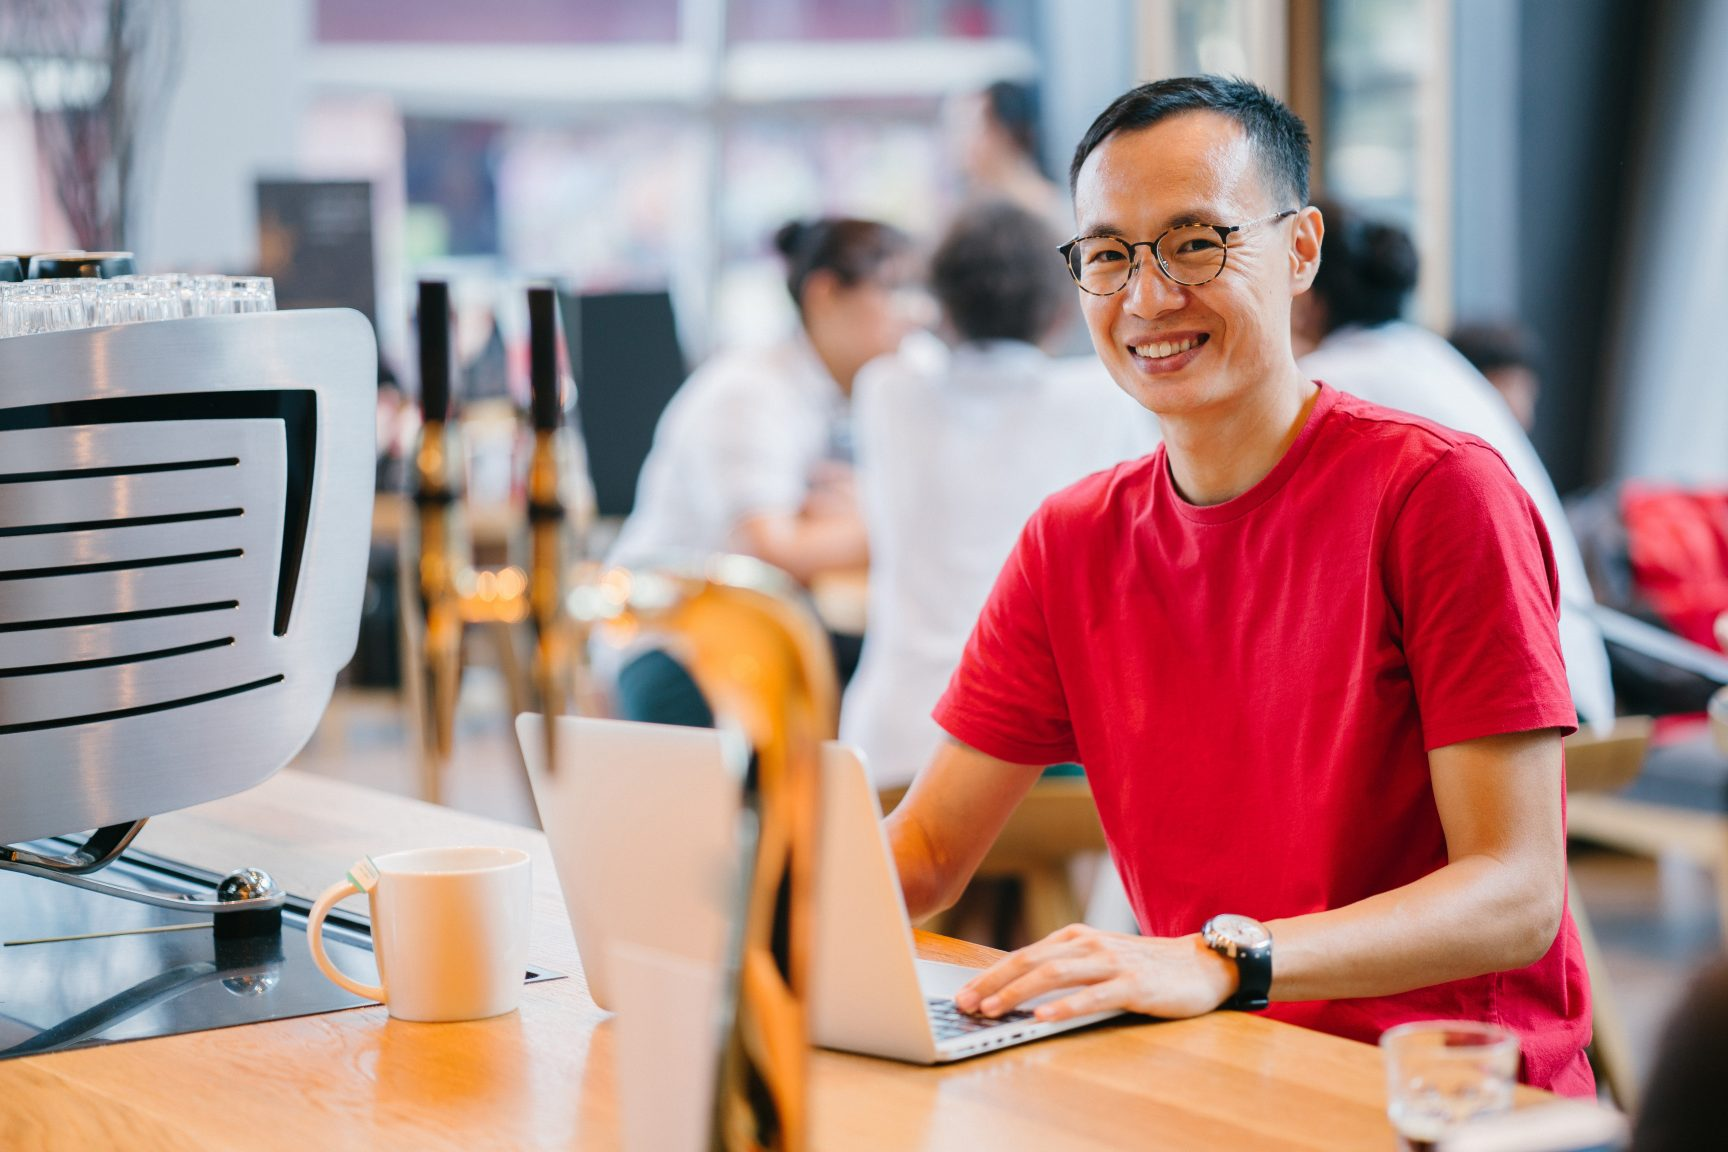 A man wearing glasses in a red t-shirt at a coffee shop working at a laptop. He is smiling at the camera.